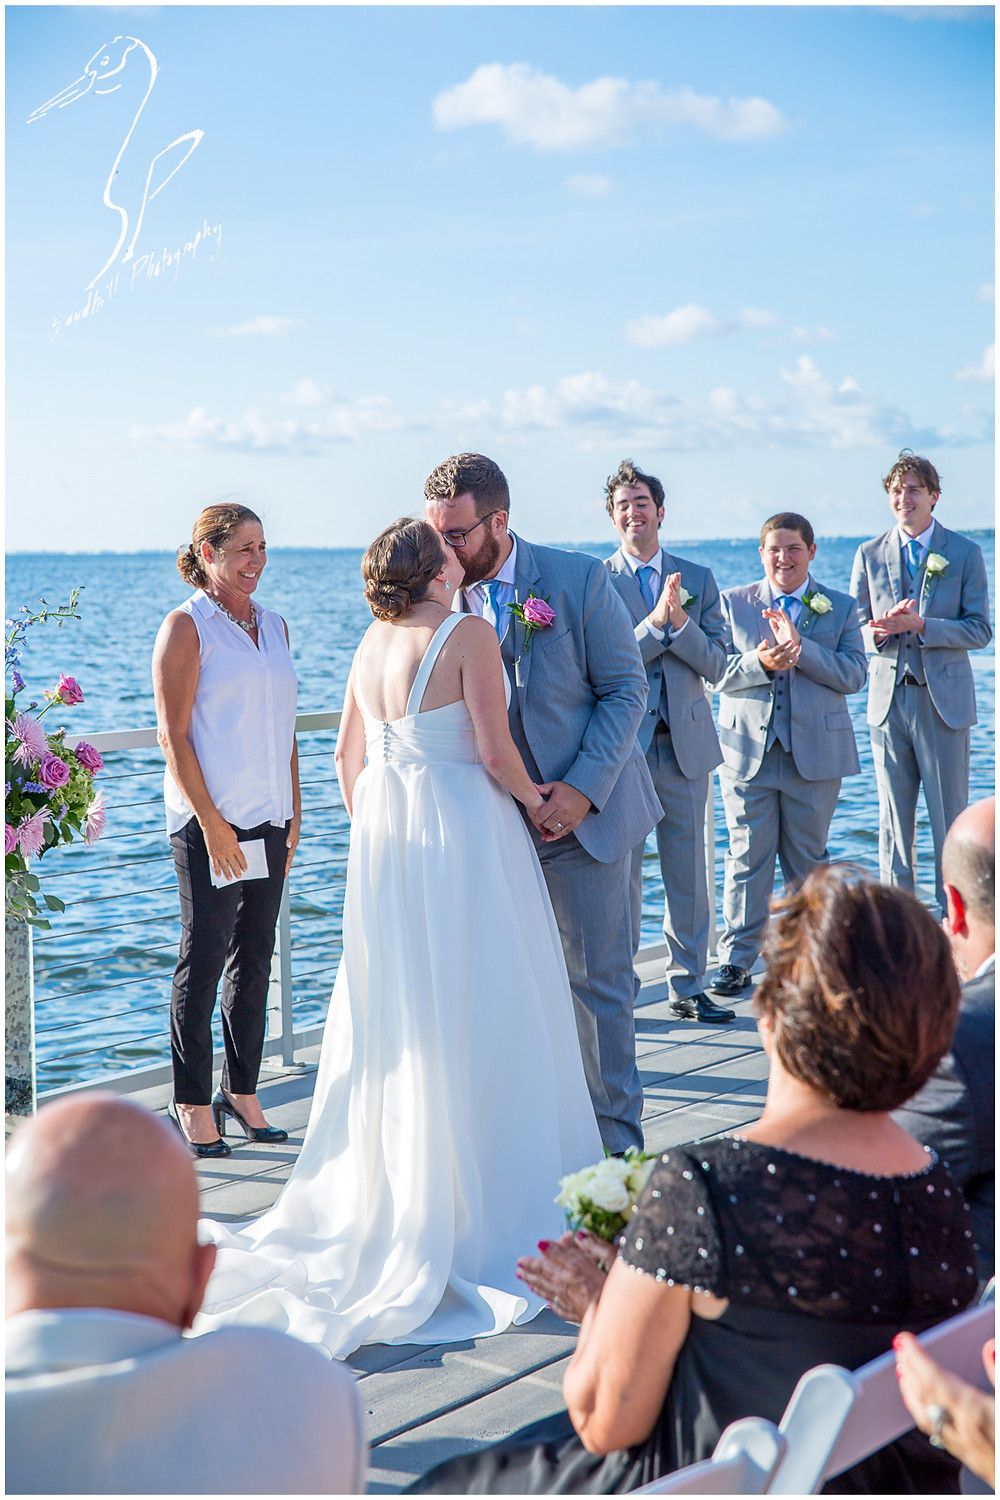 Van Wezel Wedding Photography, During the ceremony, the couple share their first kiss as husband and wife.  Sandhill Photography, Sarasota.